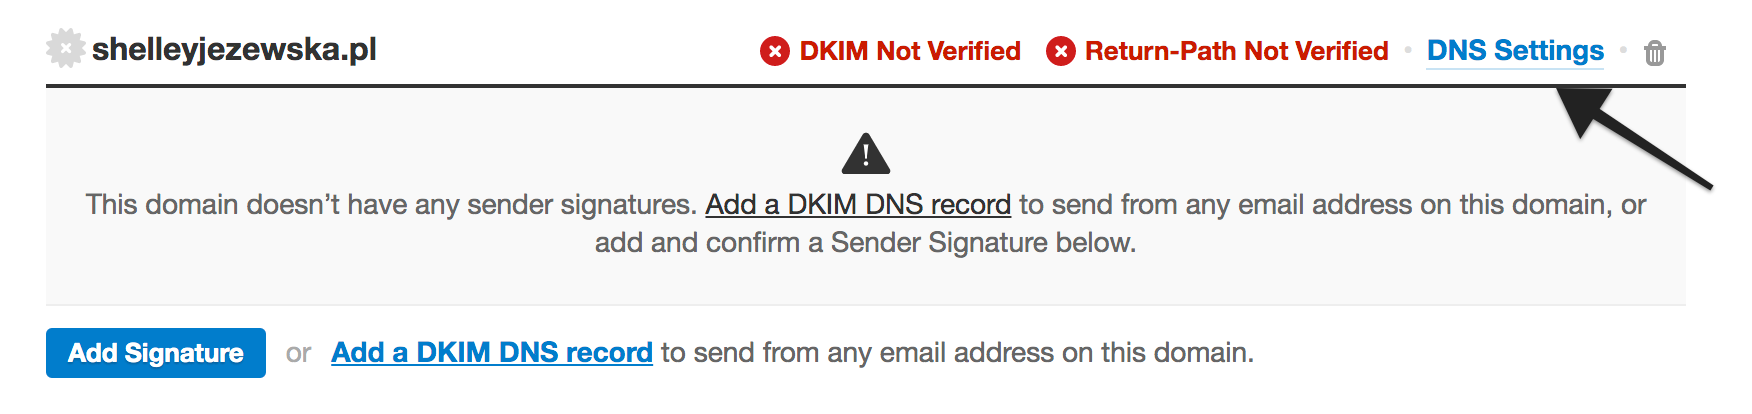 Link to DNS Settings page